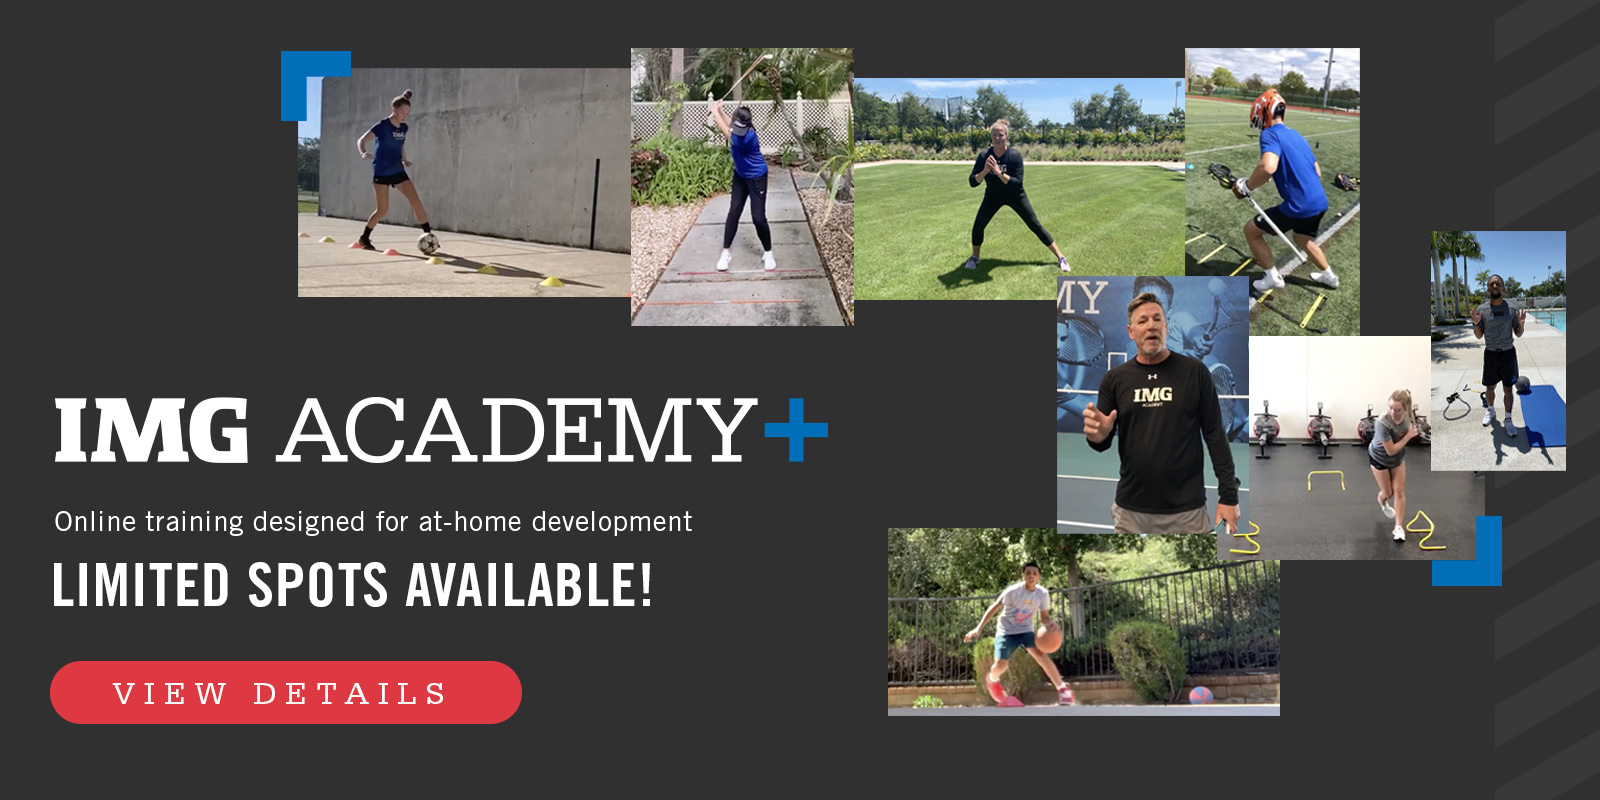 IMG Academy+. Online training designed for at-home development. Limited Spots Available! View Details